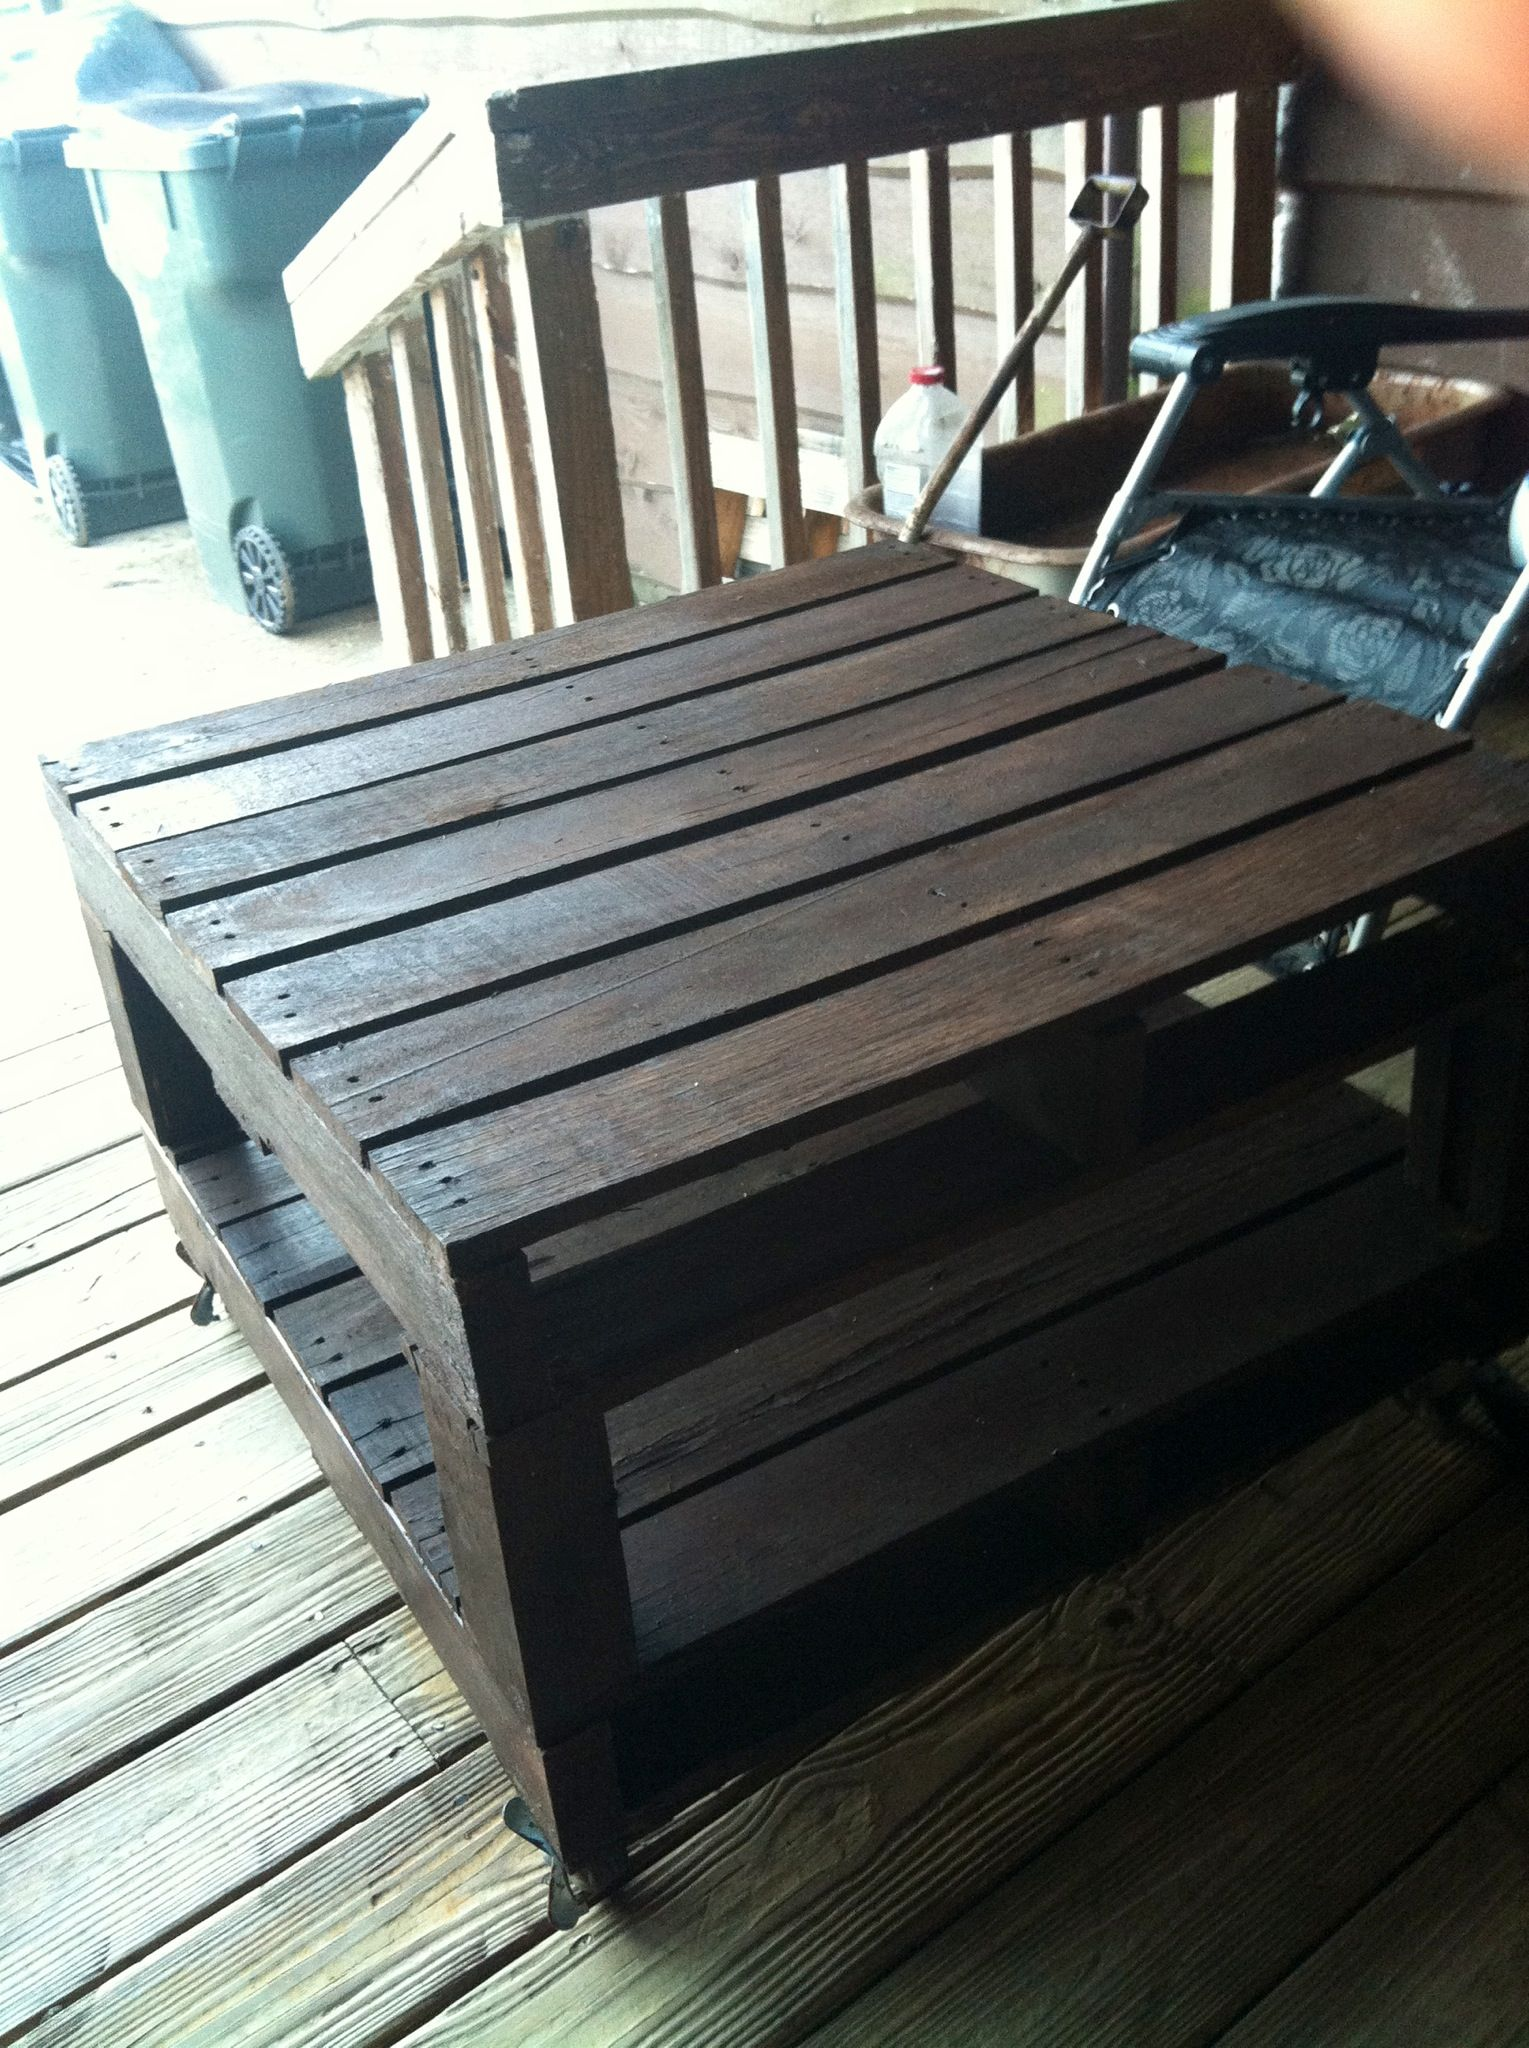 Superb img of Wood Pallet Table. Wood pallets Pinterest with #836D48 color and 1529x2048 pixels